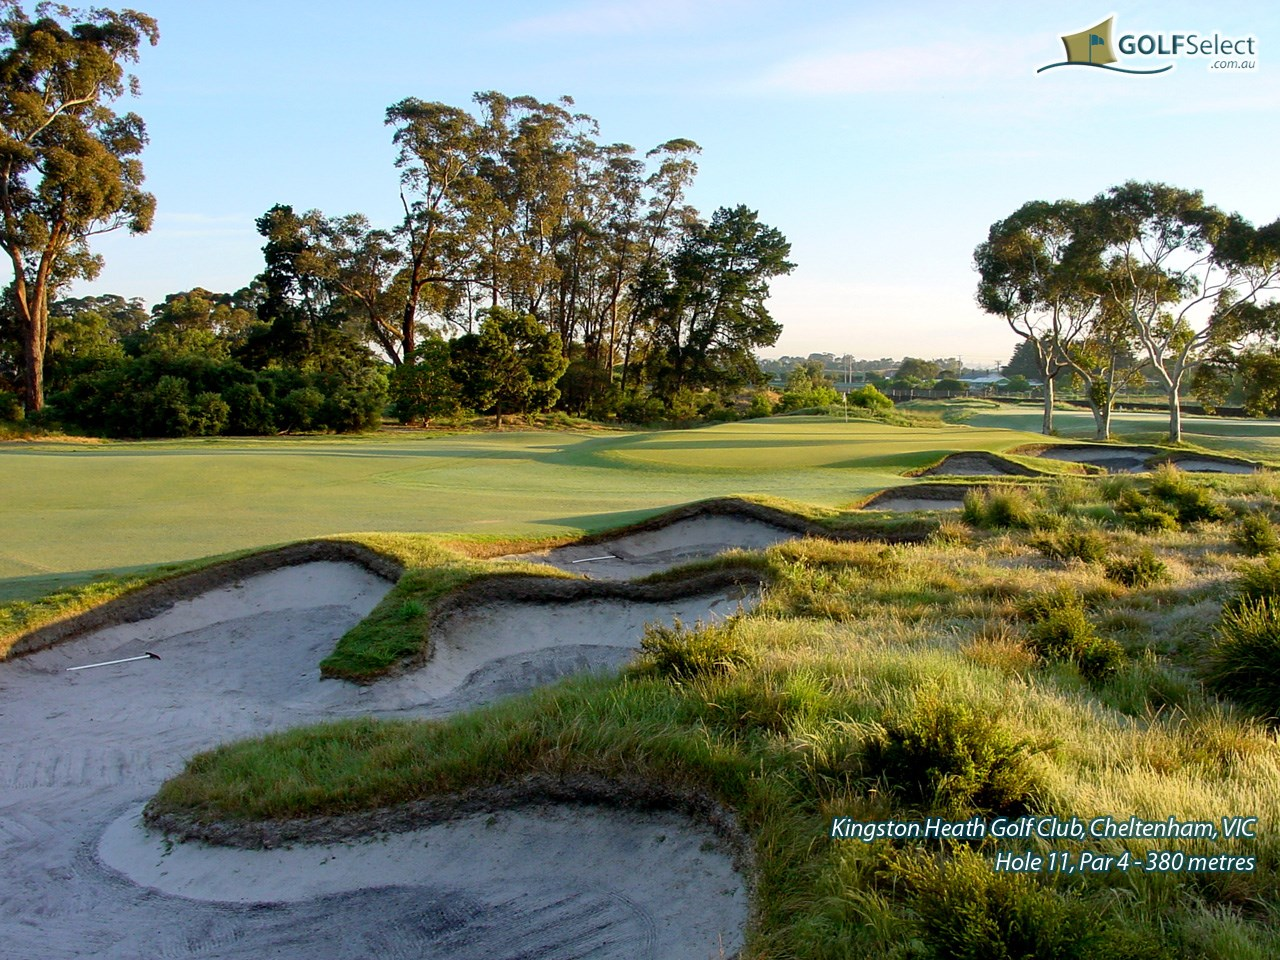 Kingston Heath Golf Club Hole 11